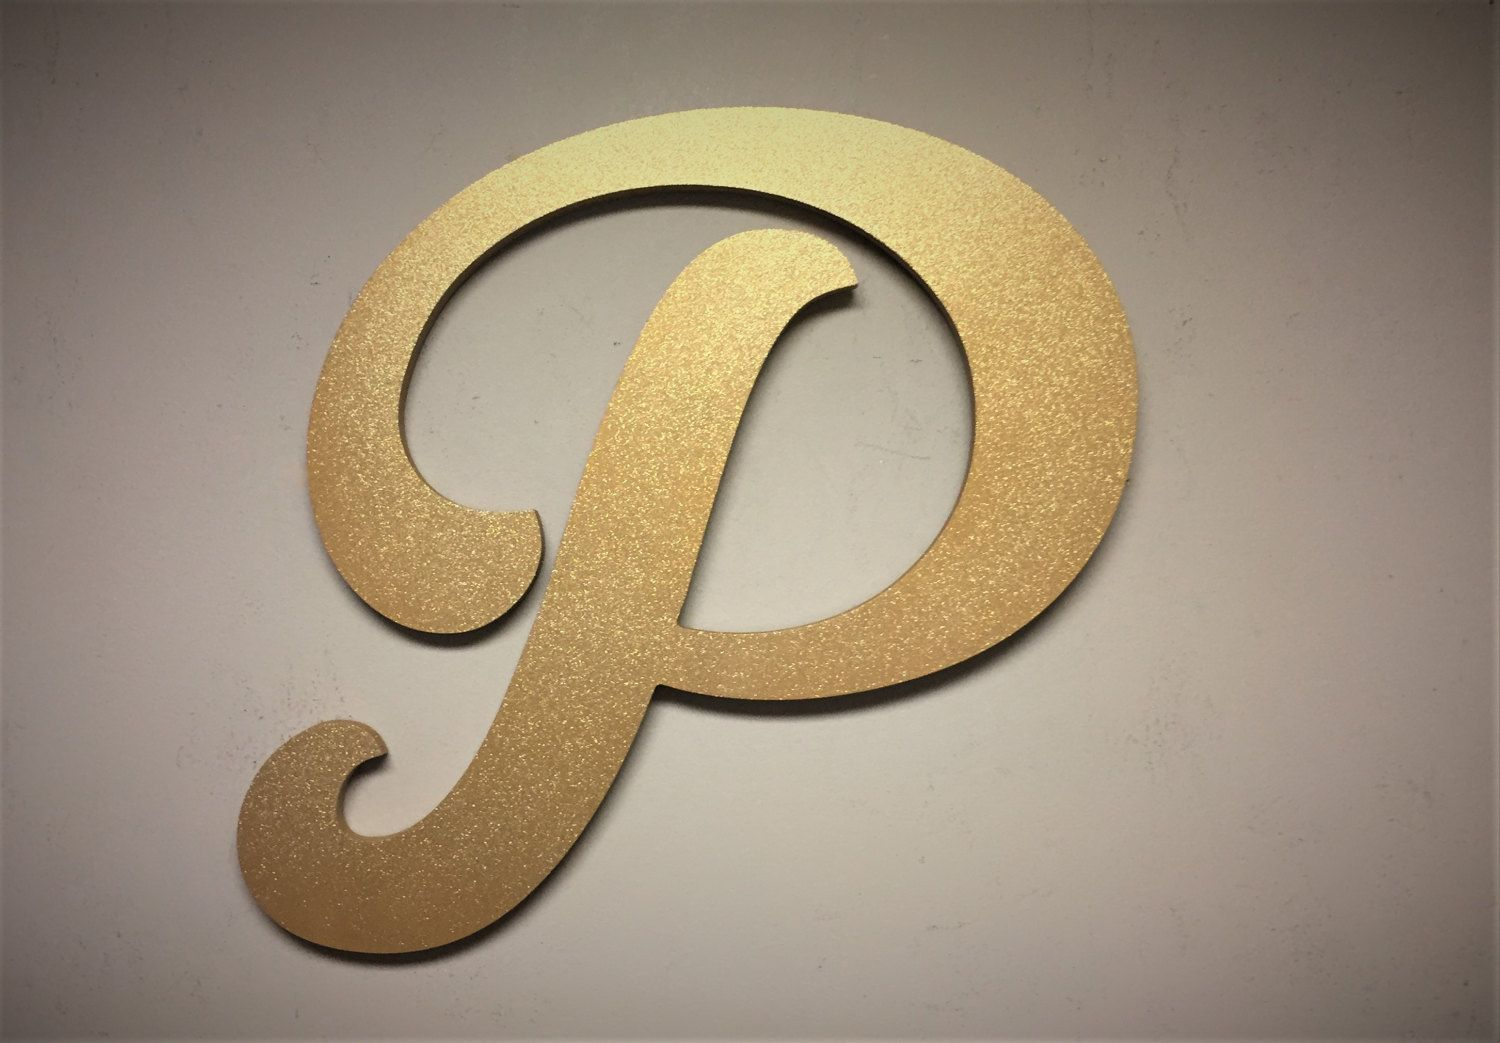 Wall Mounted Letter P Gold Sparkle Golden Letter Decor Large Letter Decor Home Wall Decor Nursery R Decorative Letters Letters And Numbers Home Wall Decor